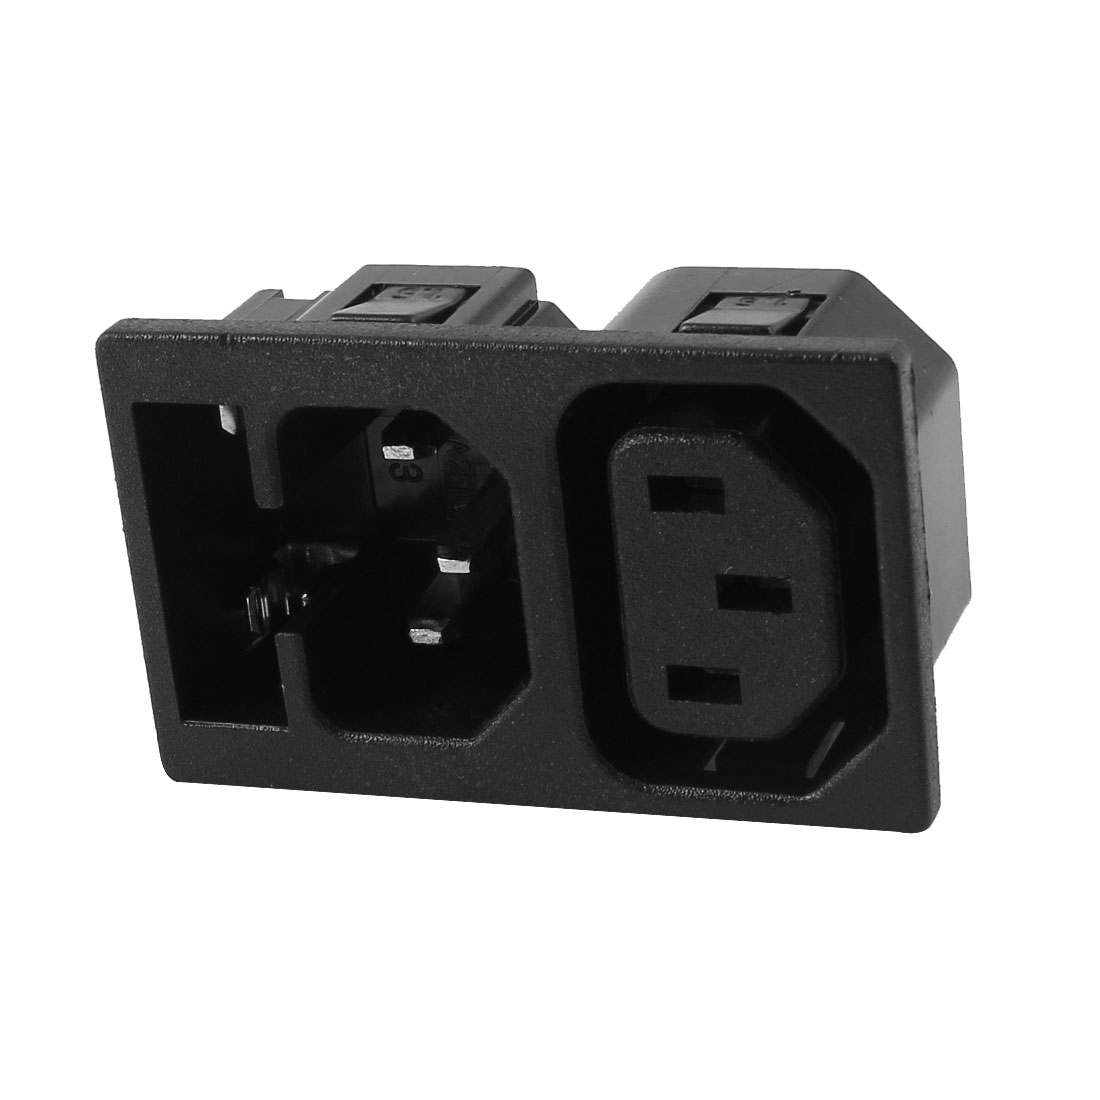 AC 250V 10A/15A Panel Mounted IEC C13 C14 Power Socket Adapter w Fuse Holder